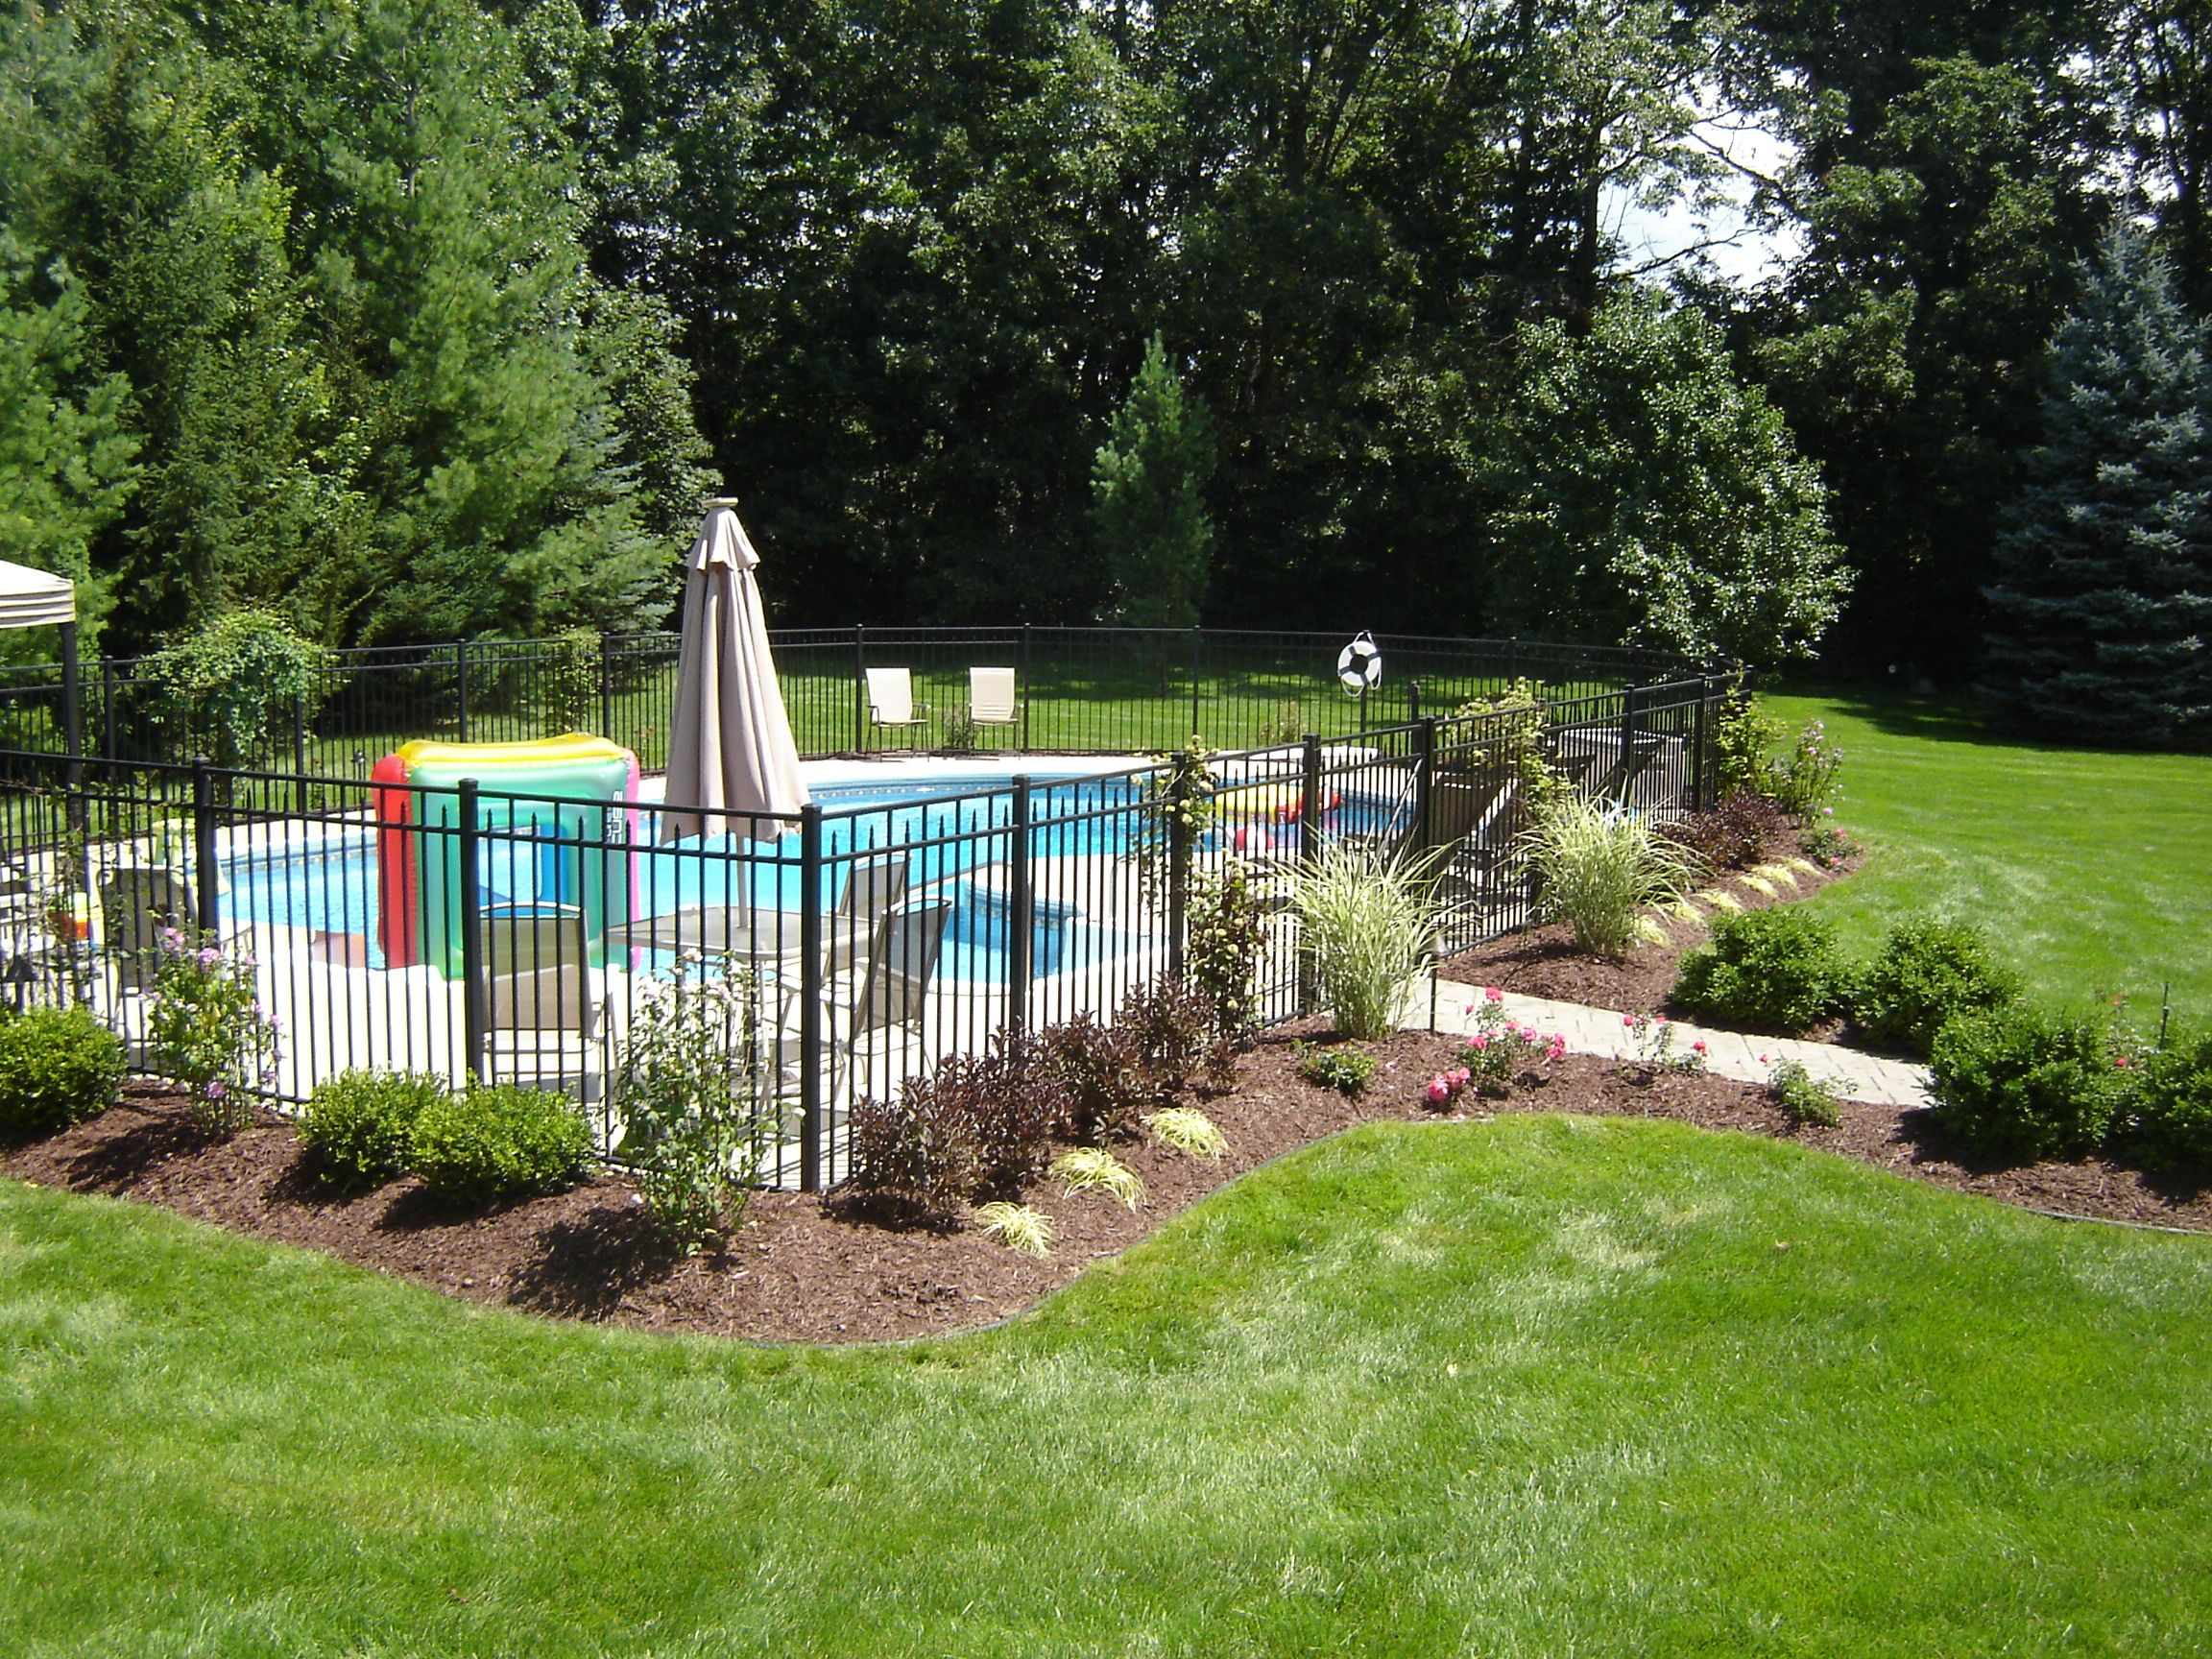 Etonnant Small Pool Landscaping Ideas Closed Black Iron Fences Around Flowers  Decorating Ideas With Large Yard Below The Big Trees 27 Great Pool  Landscaping Ideas ...